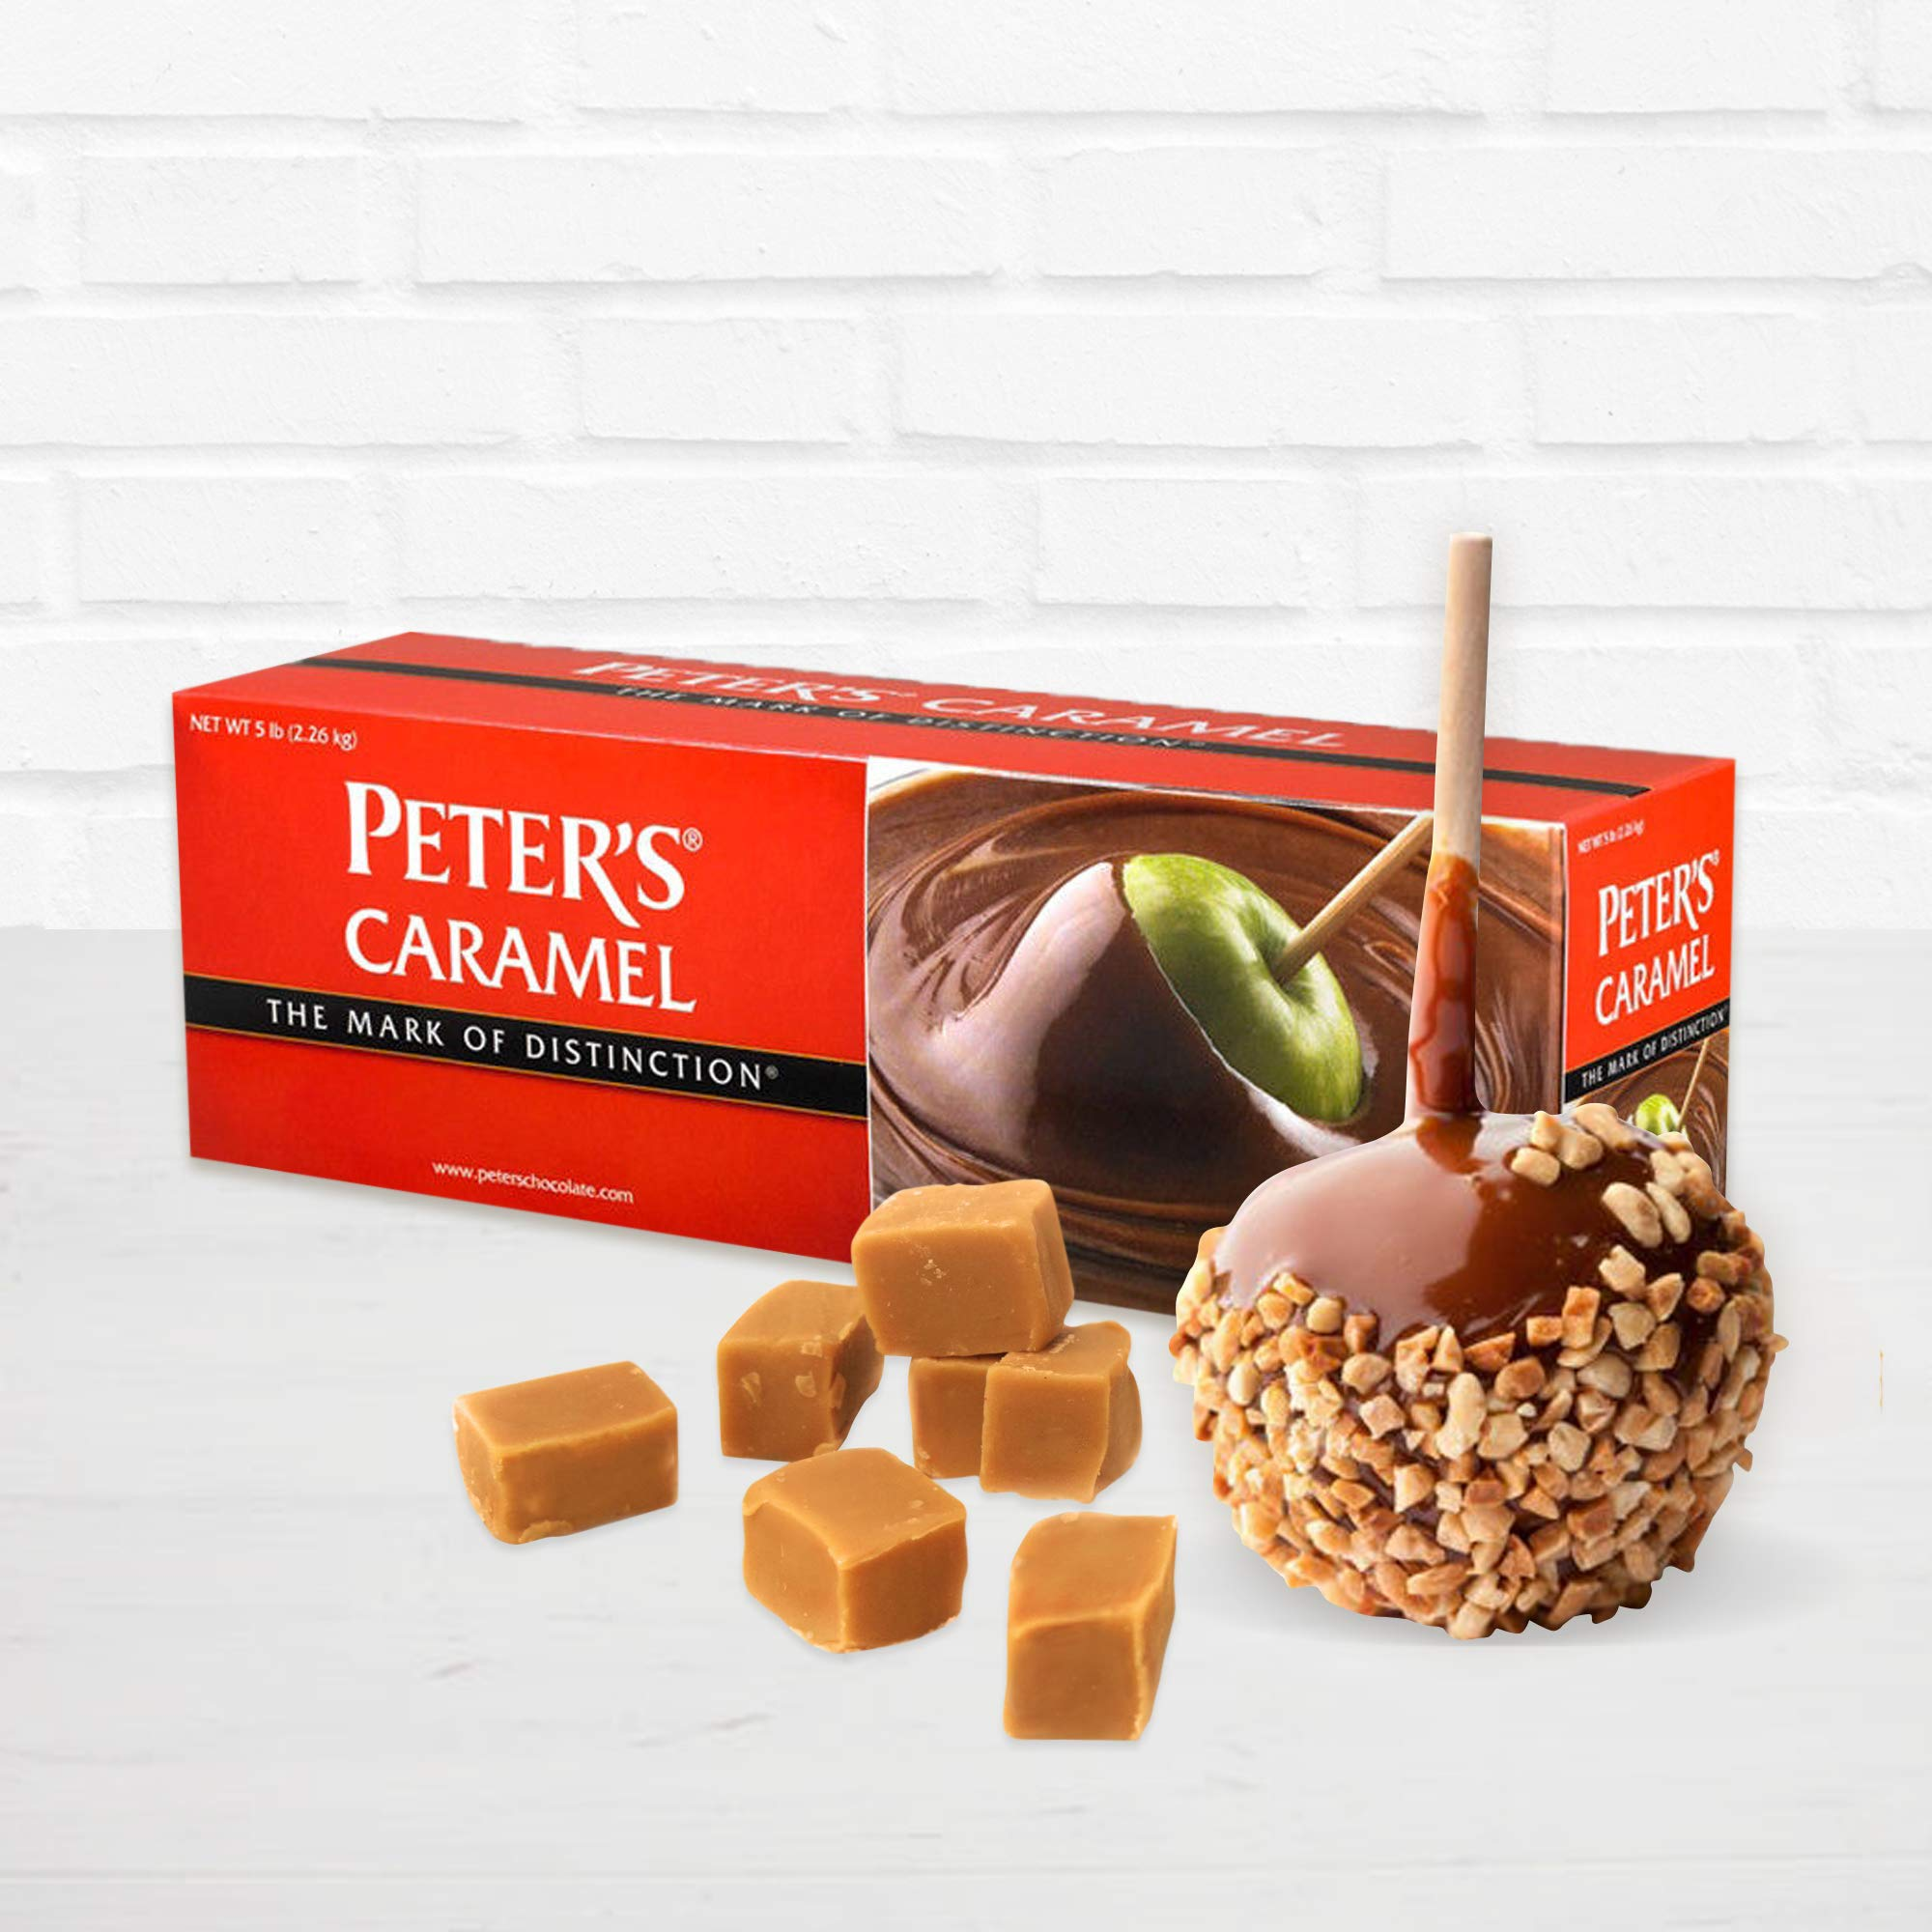 Peter's Creamy Caramel, 5 Lb. Block (Pack of 4) by Peters (Image #2)